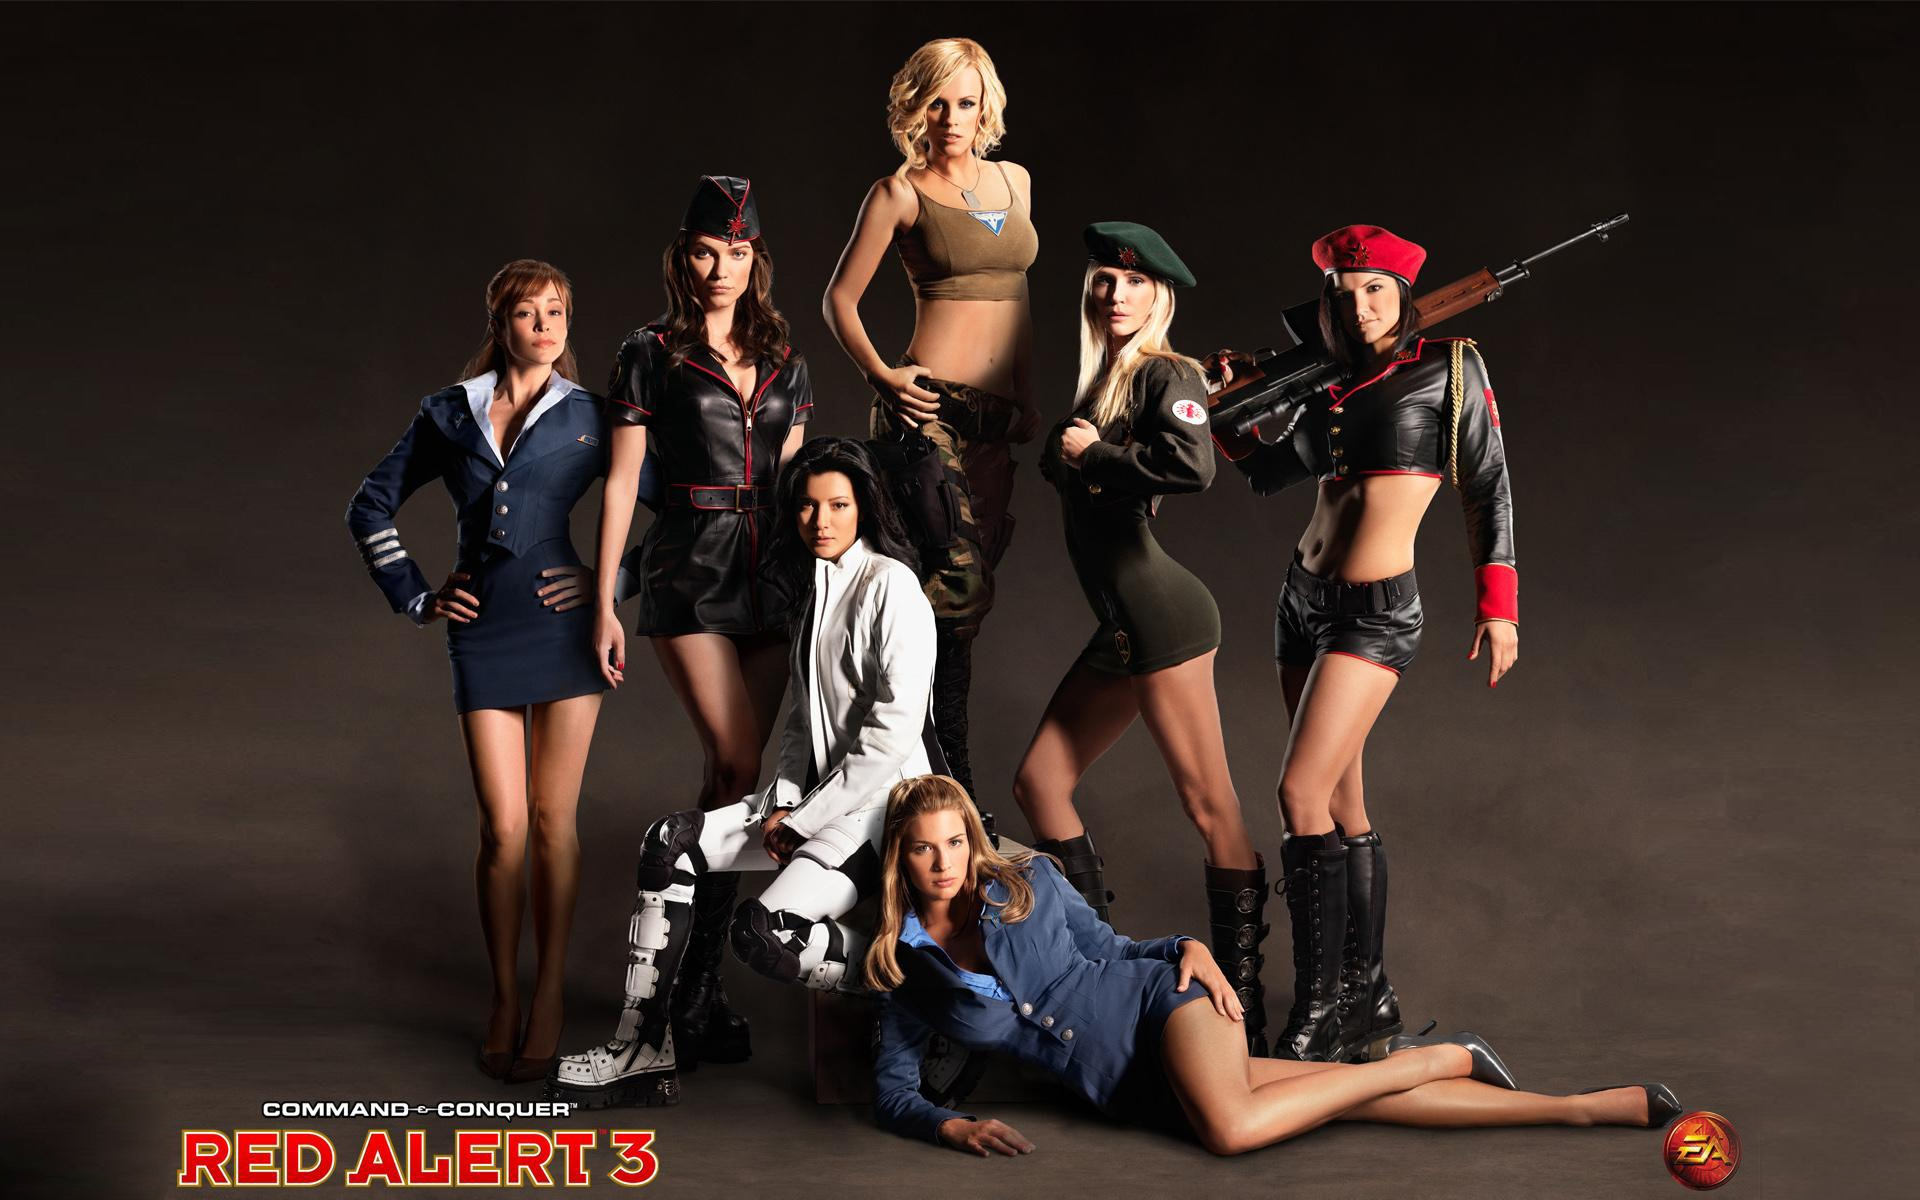 Rather valuable command and conquer red alert girls